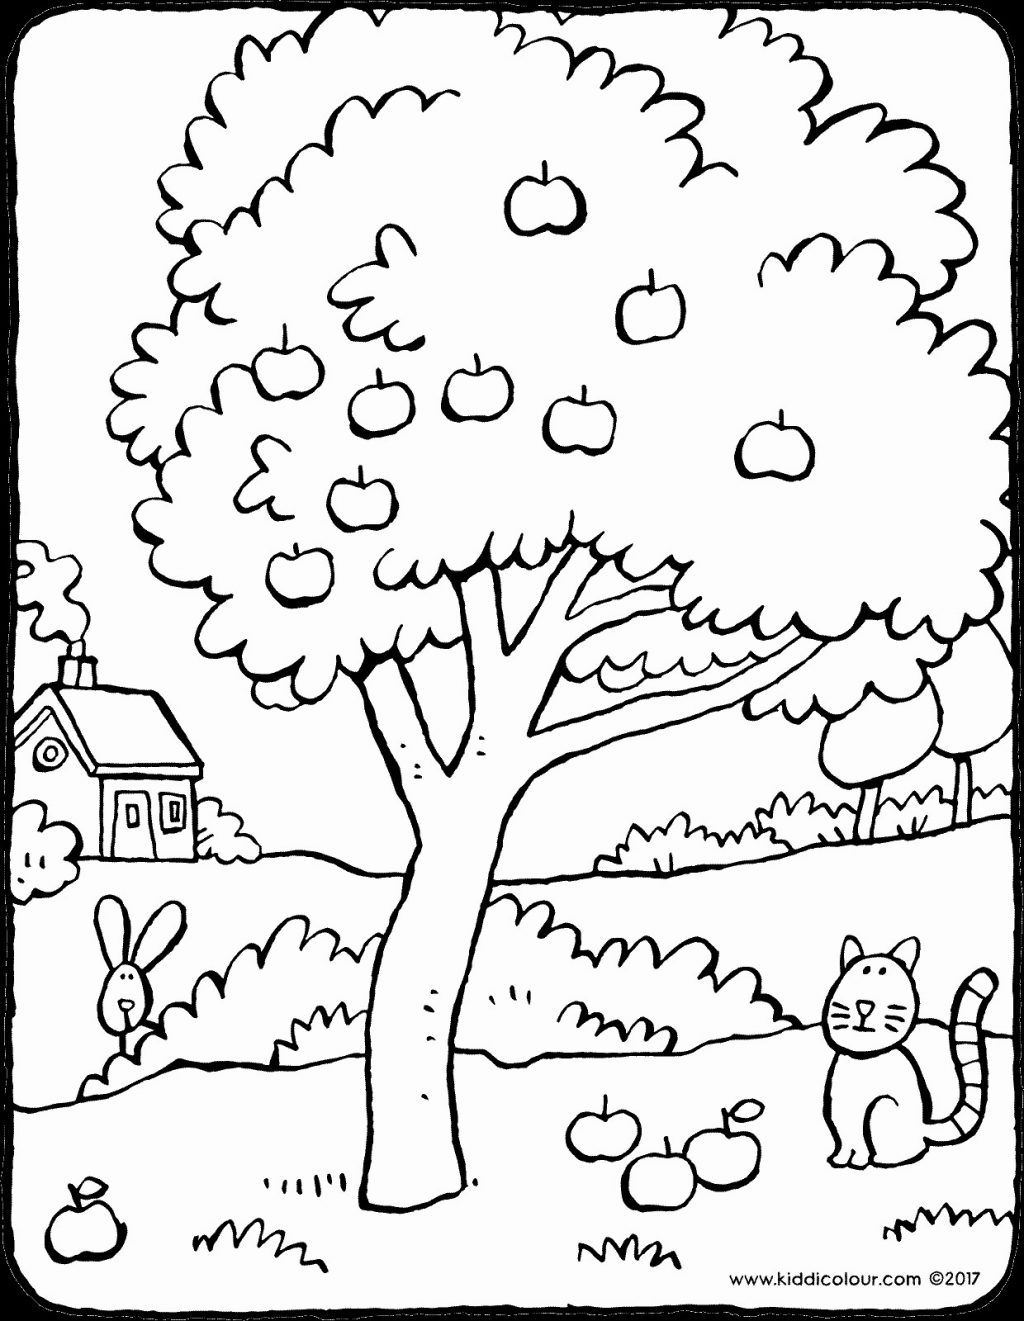 Coloring Pages Apple Tree Coloring Book Refrence Trees Page Palm Fabulous Coloring Book Tree Tree Coloring Page Shopkins Colouring Pages Fruit Coloring Pages